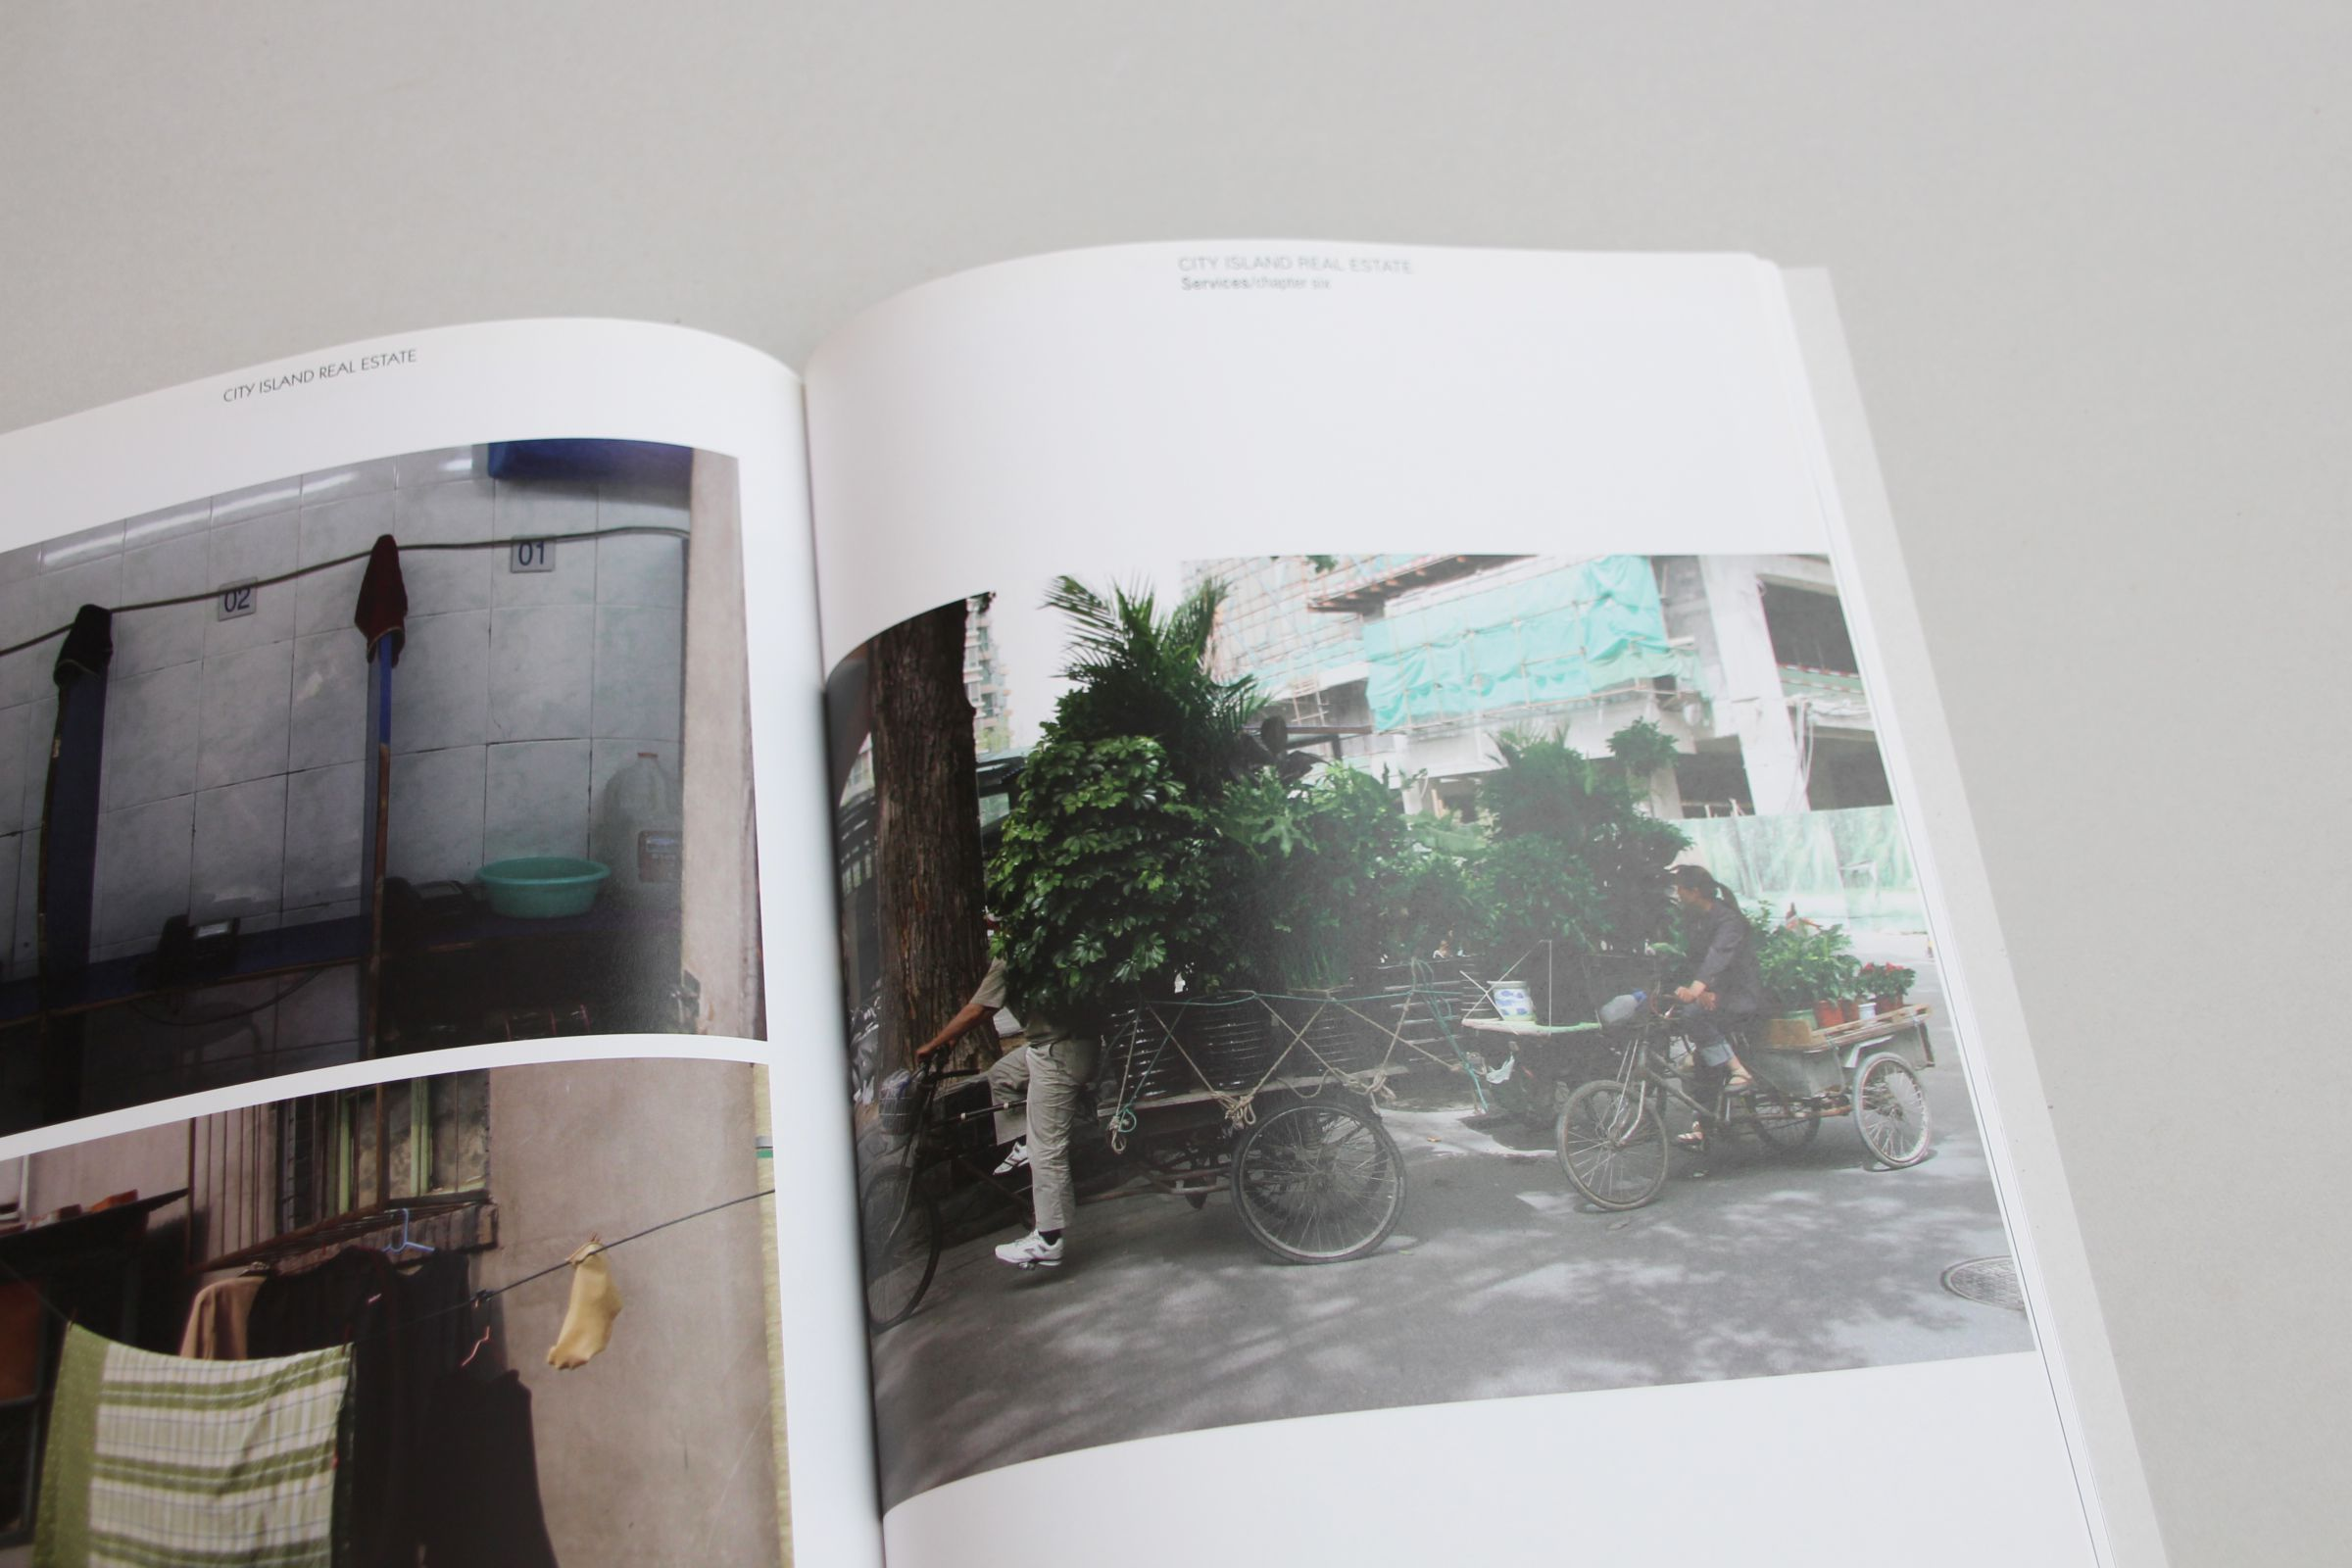 Sandberg China beeldessay city Island  fotografie photography gegraphic design studio de vormforensen by Annelou van Griensven Anne-Marie Annemarie Geurink Bookdesign Arnhem graphic anthropology boekontwerp coverontwerp omslag arnhem grafisch ontwerp uitgeverij boekontwerp bejing